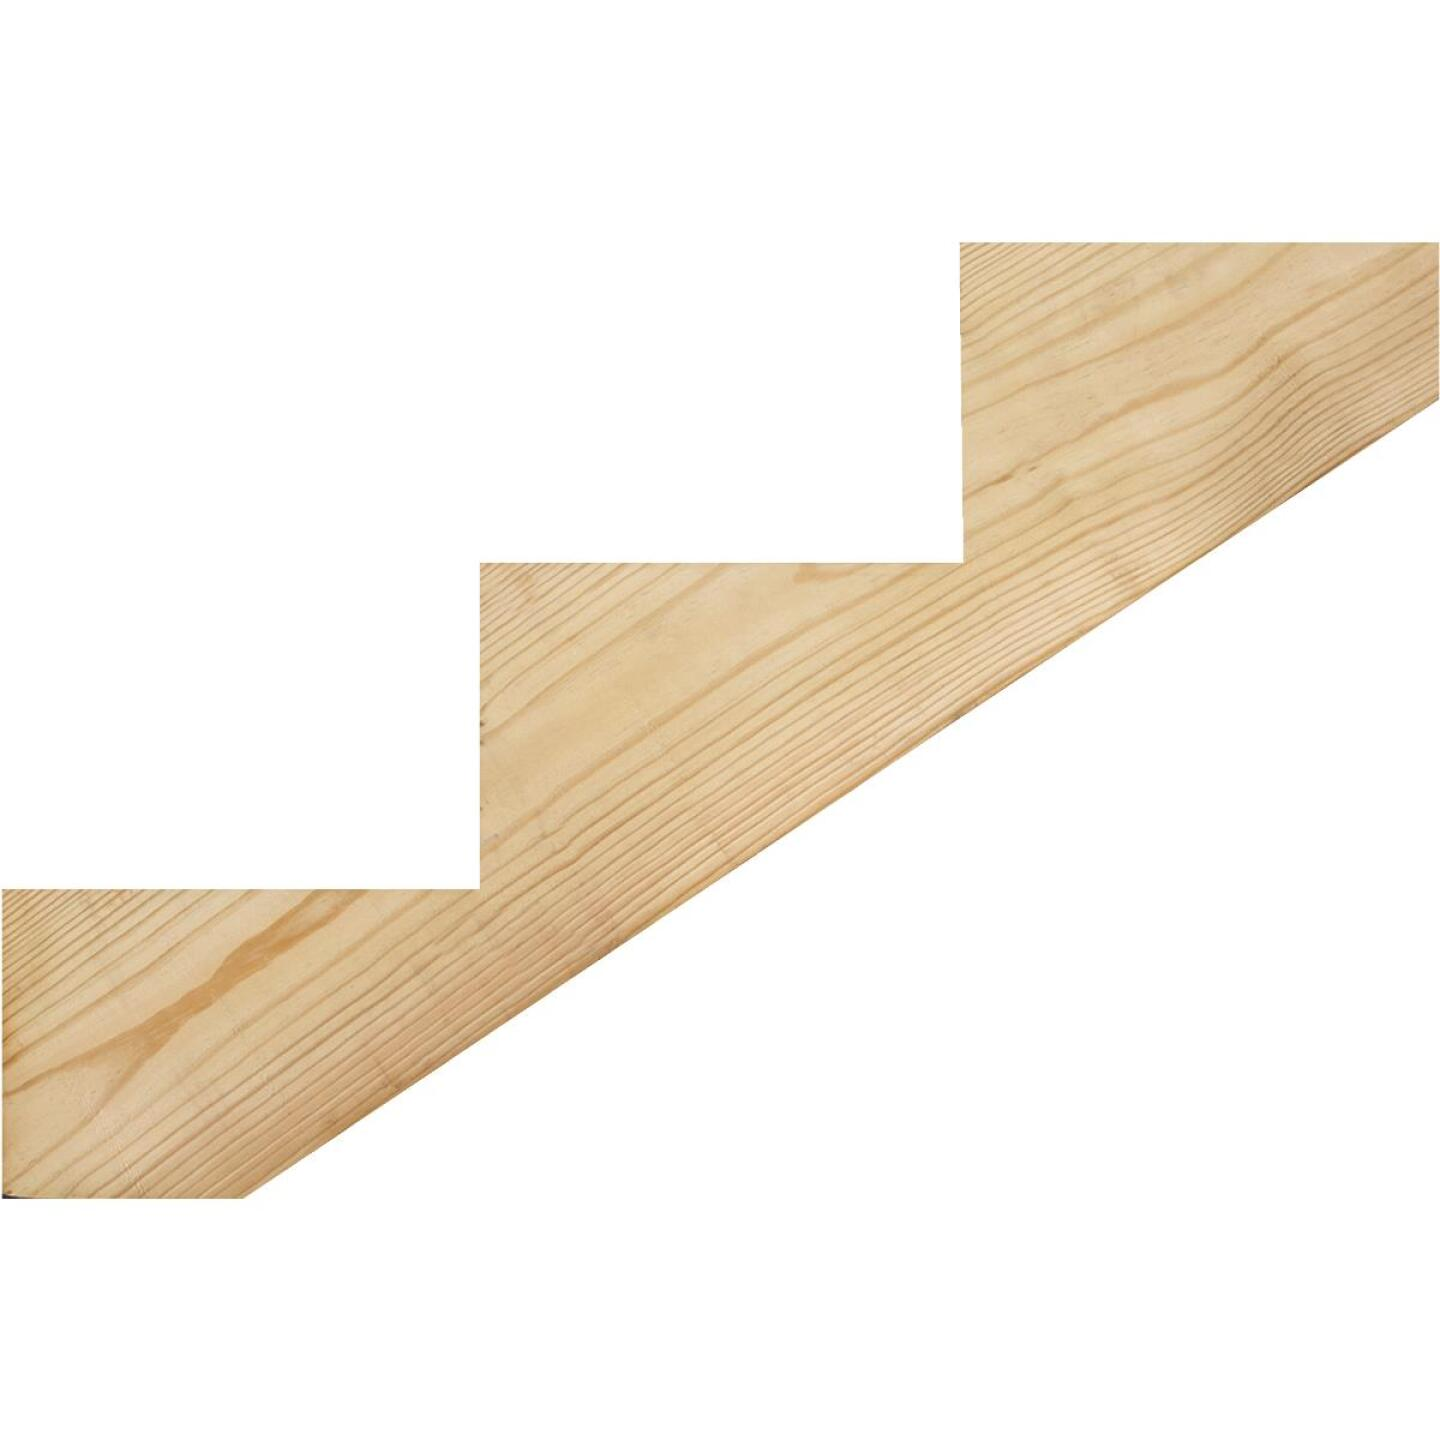 Kitzmans 2 In. x 10 In. 3-Step Treated Precut Stair Stringer Image 1